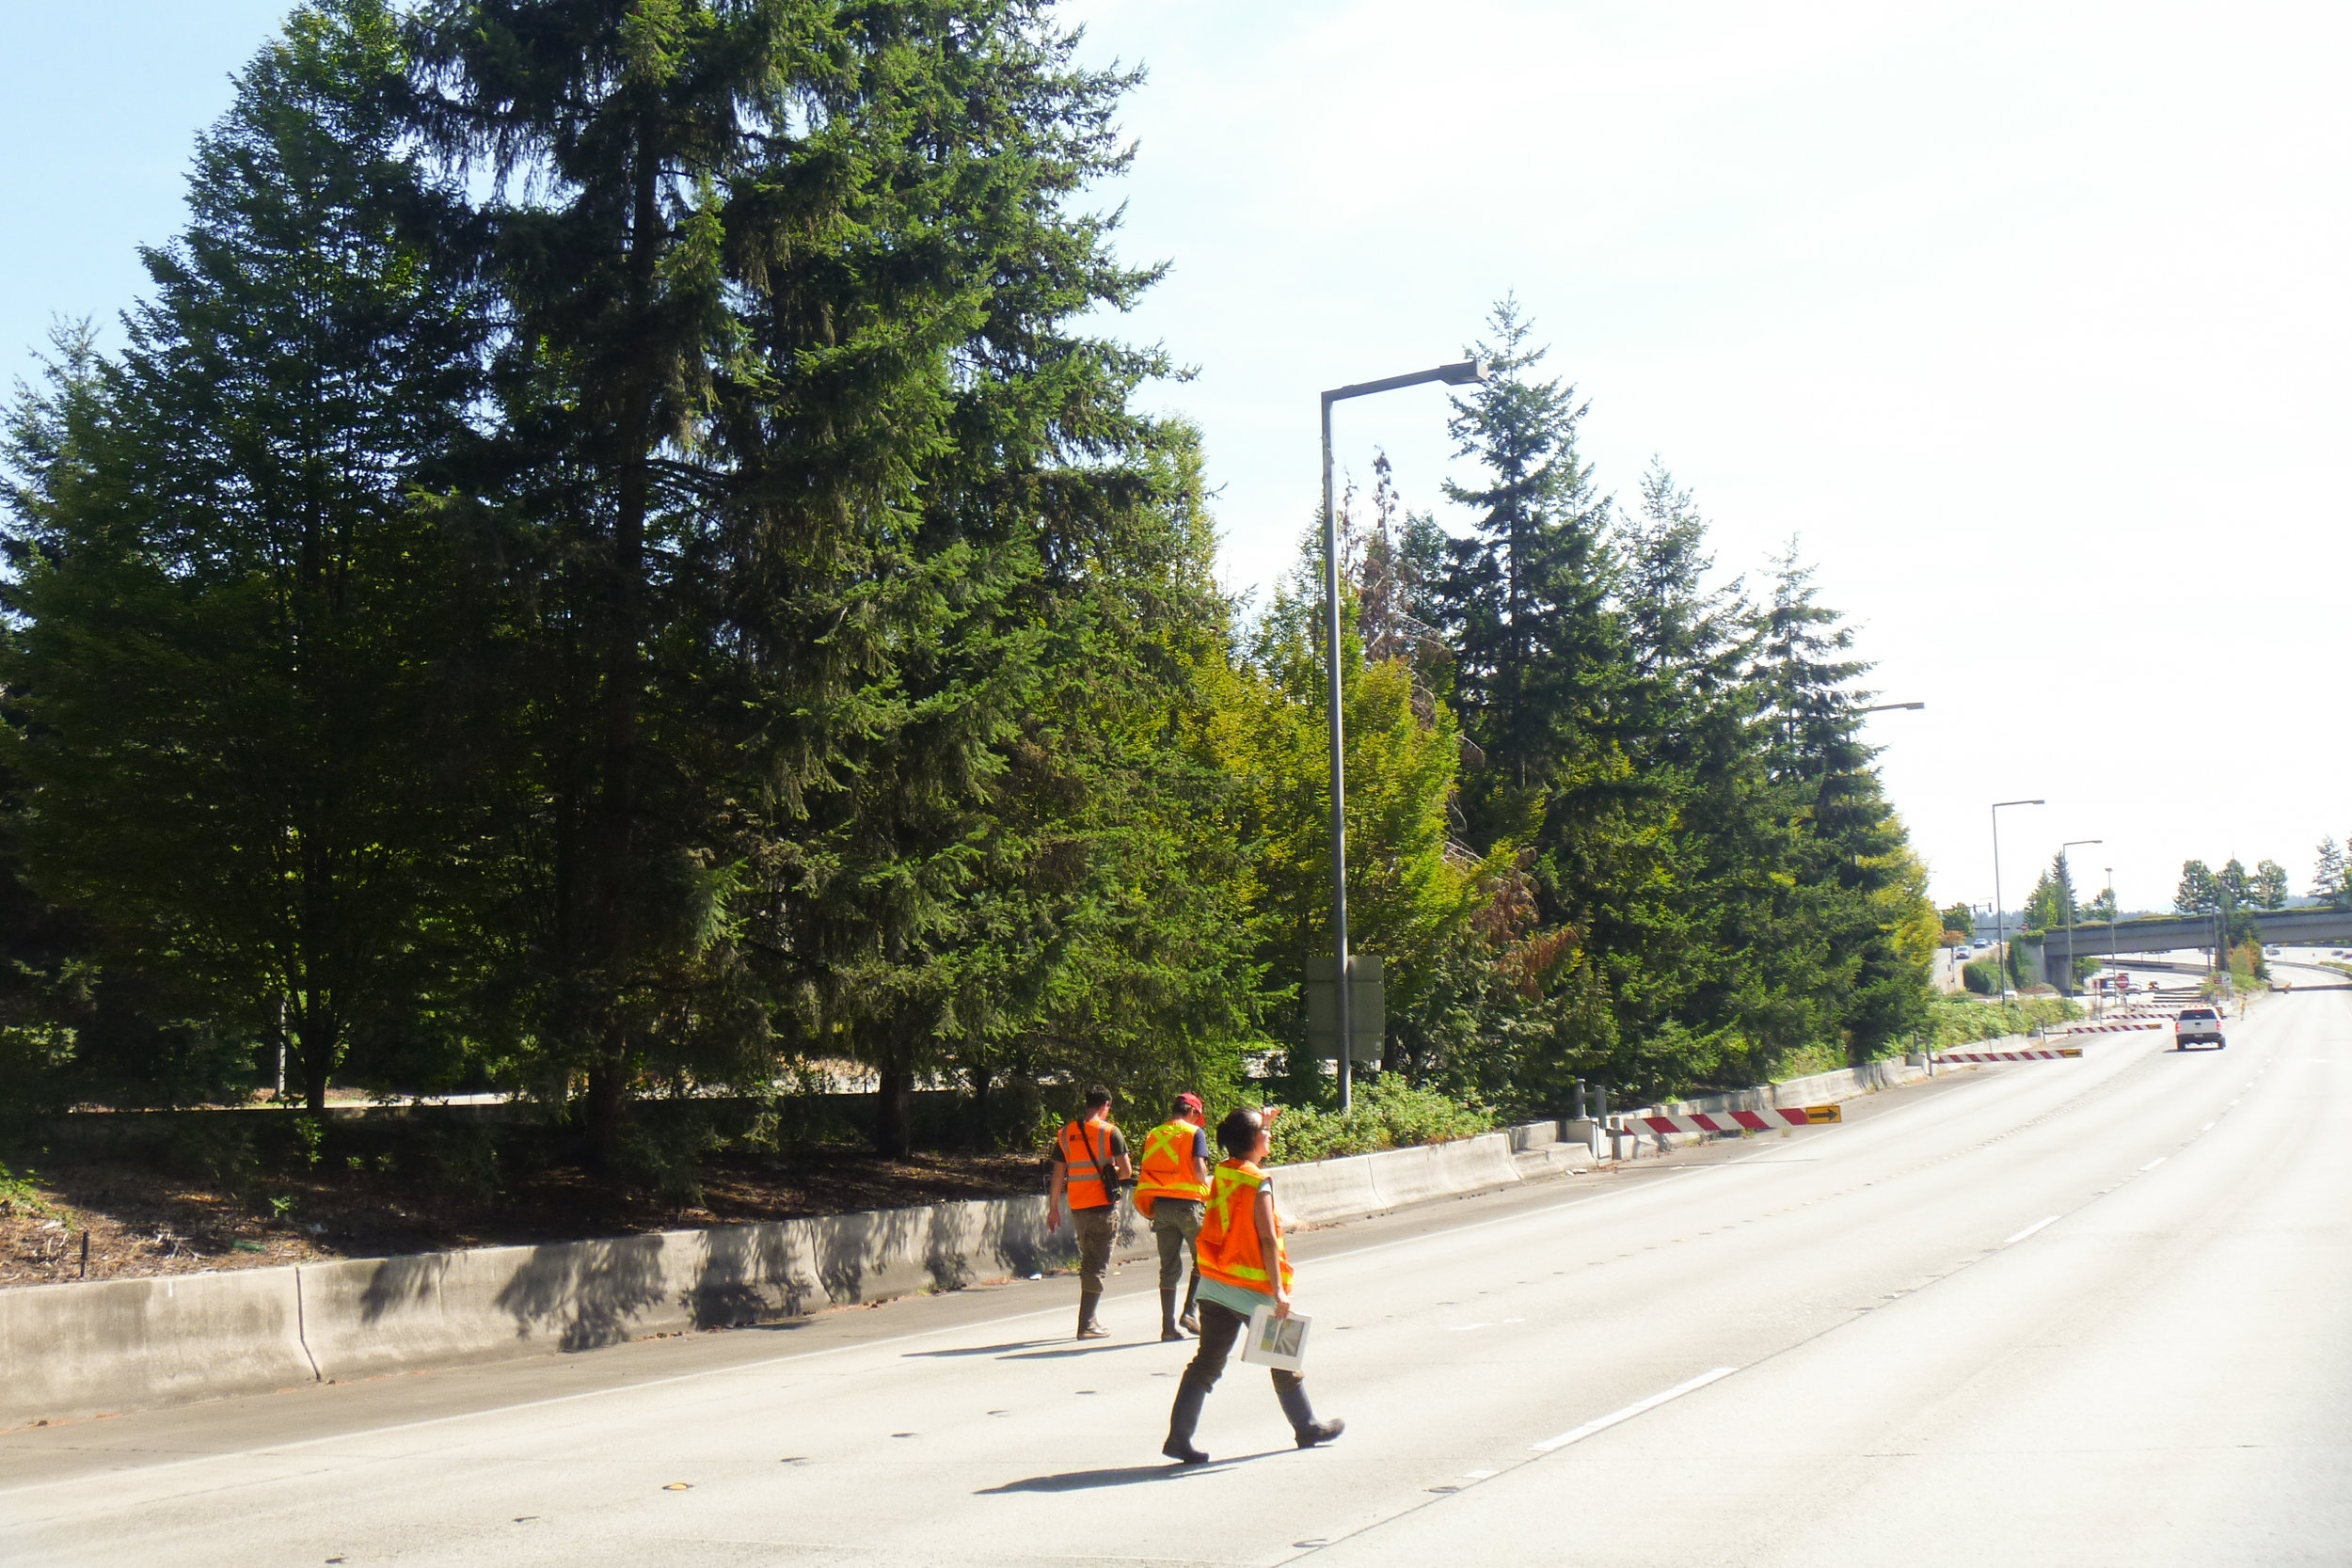 The Watershed Company provided wetland and stream delineation, tree inventory, environmental permitting, and mitigation design in support of Sound Transit's extension of rail lines.